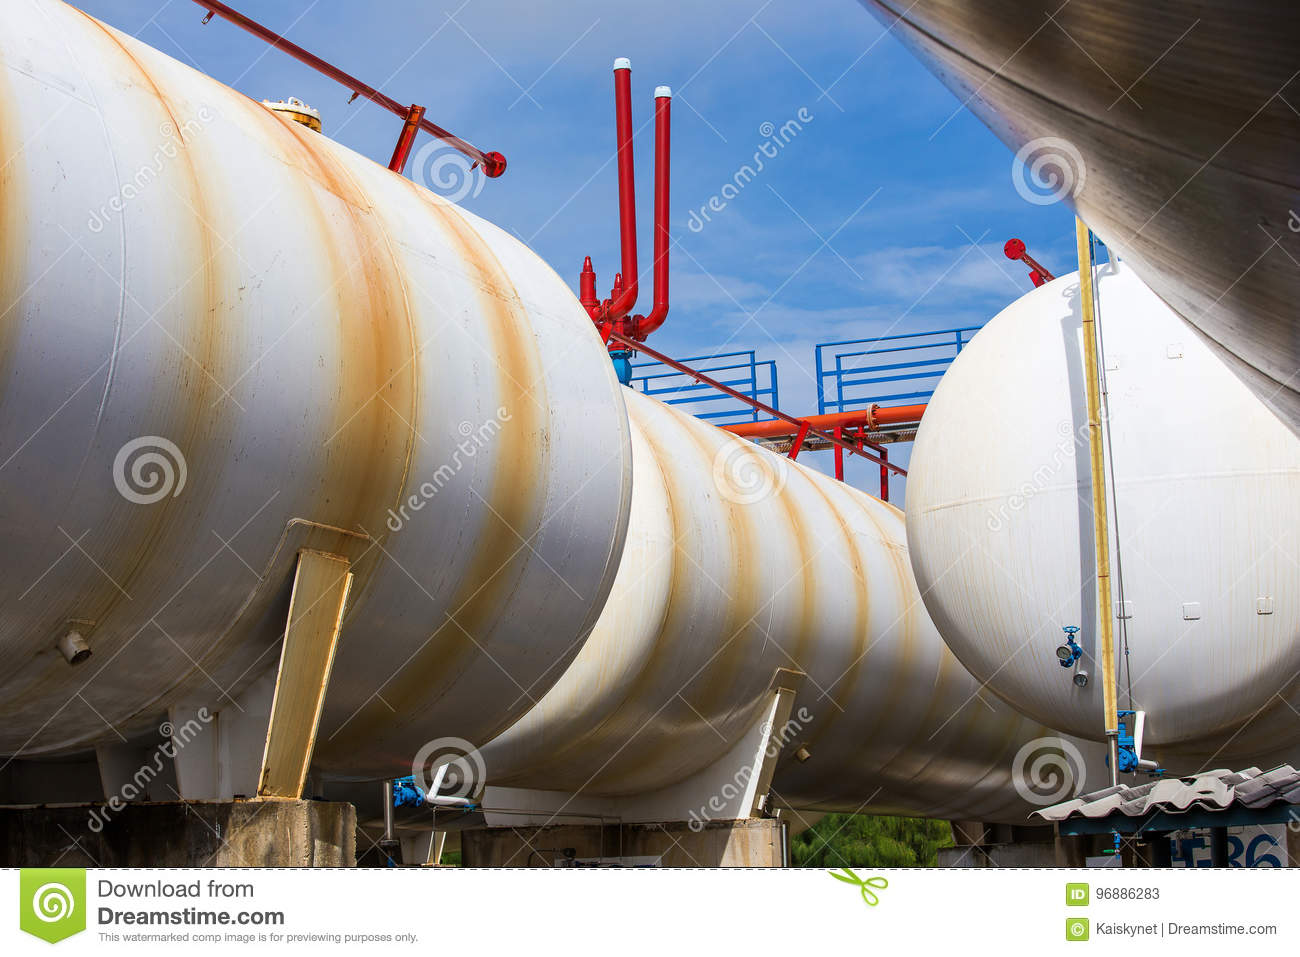 LPG Gas Industrial Storage Sphere Tanks And Pressure Safety